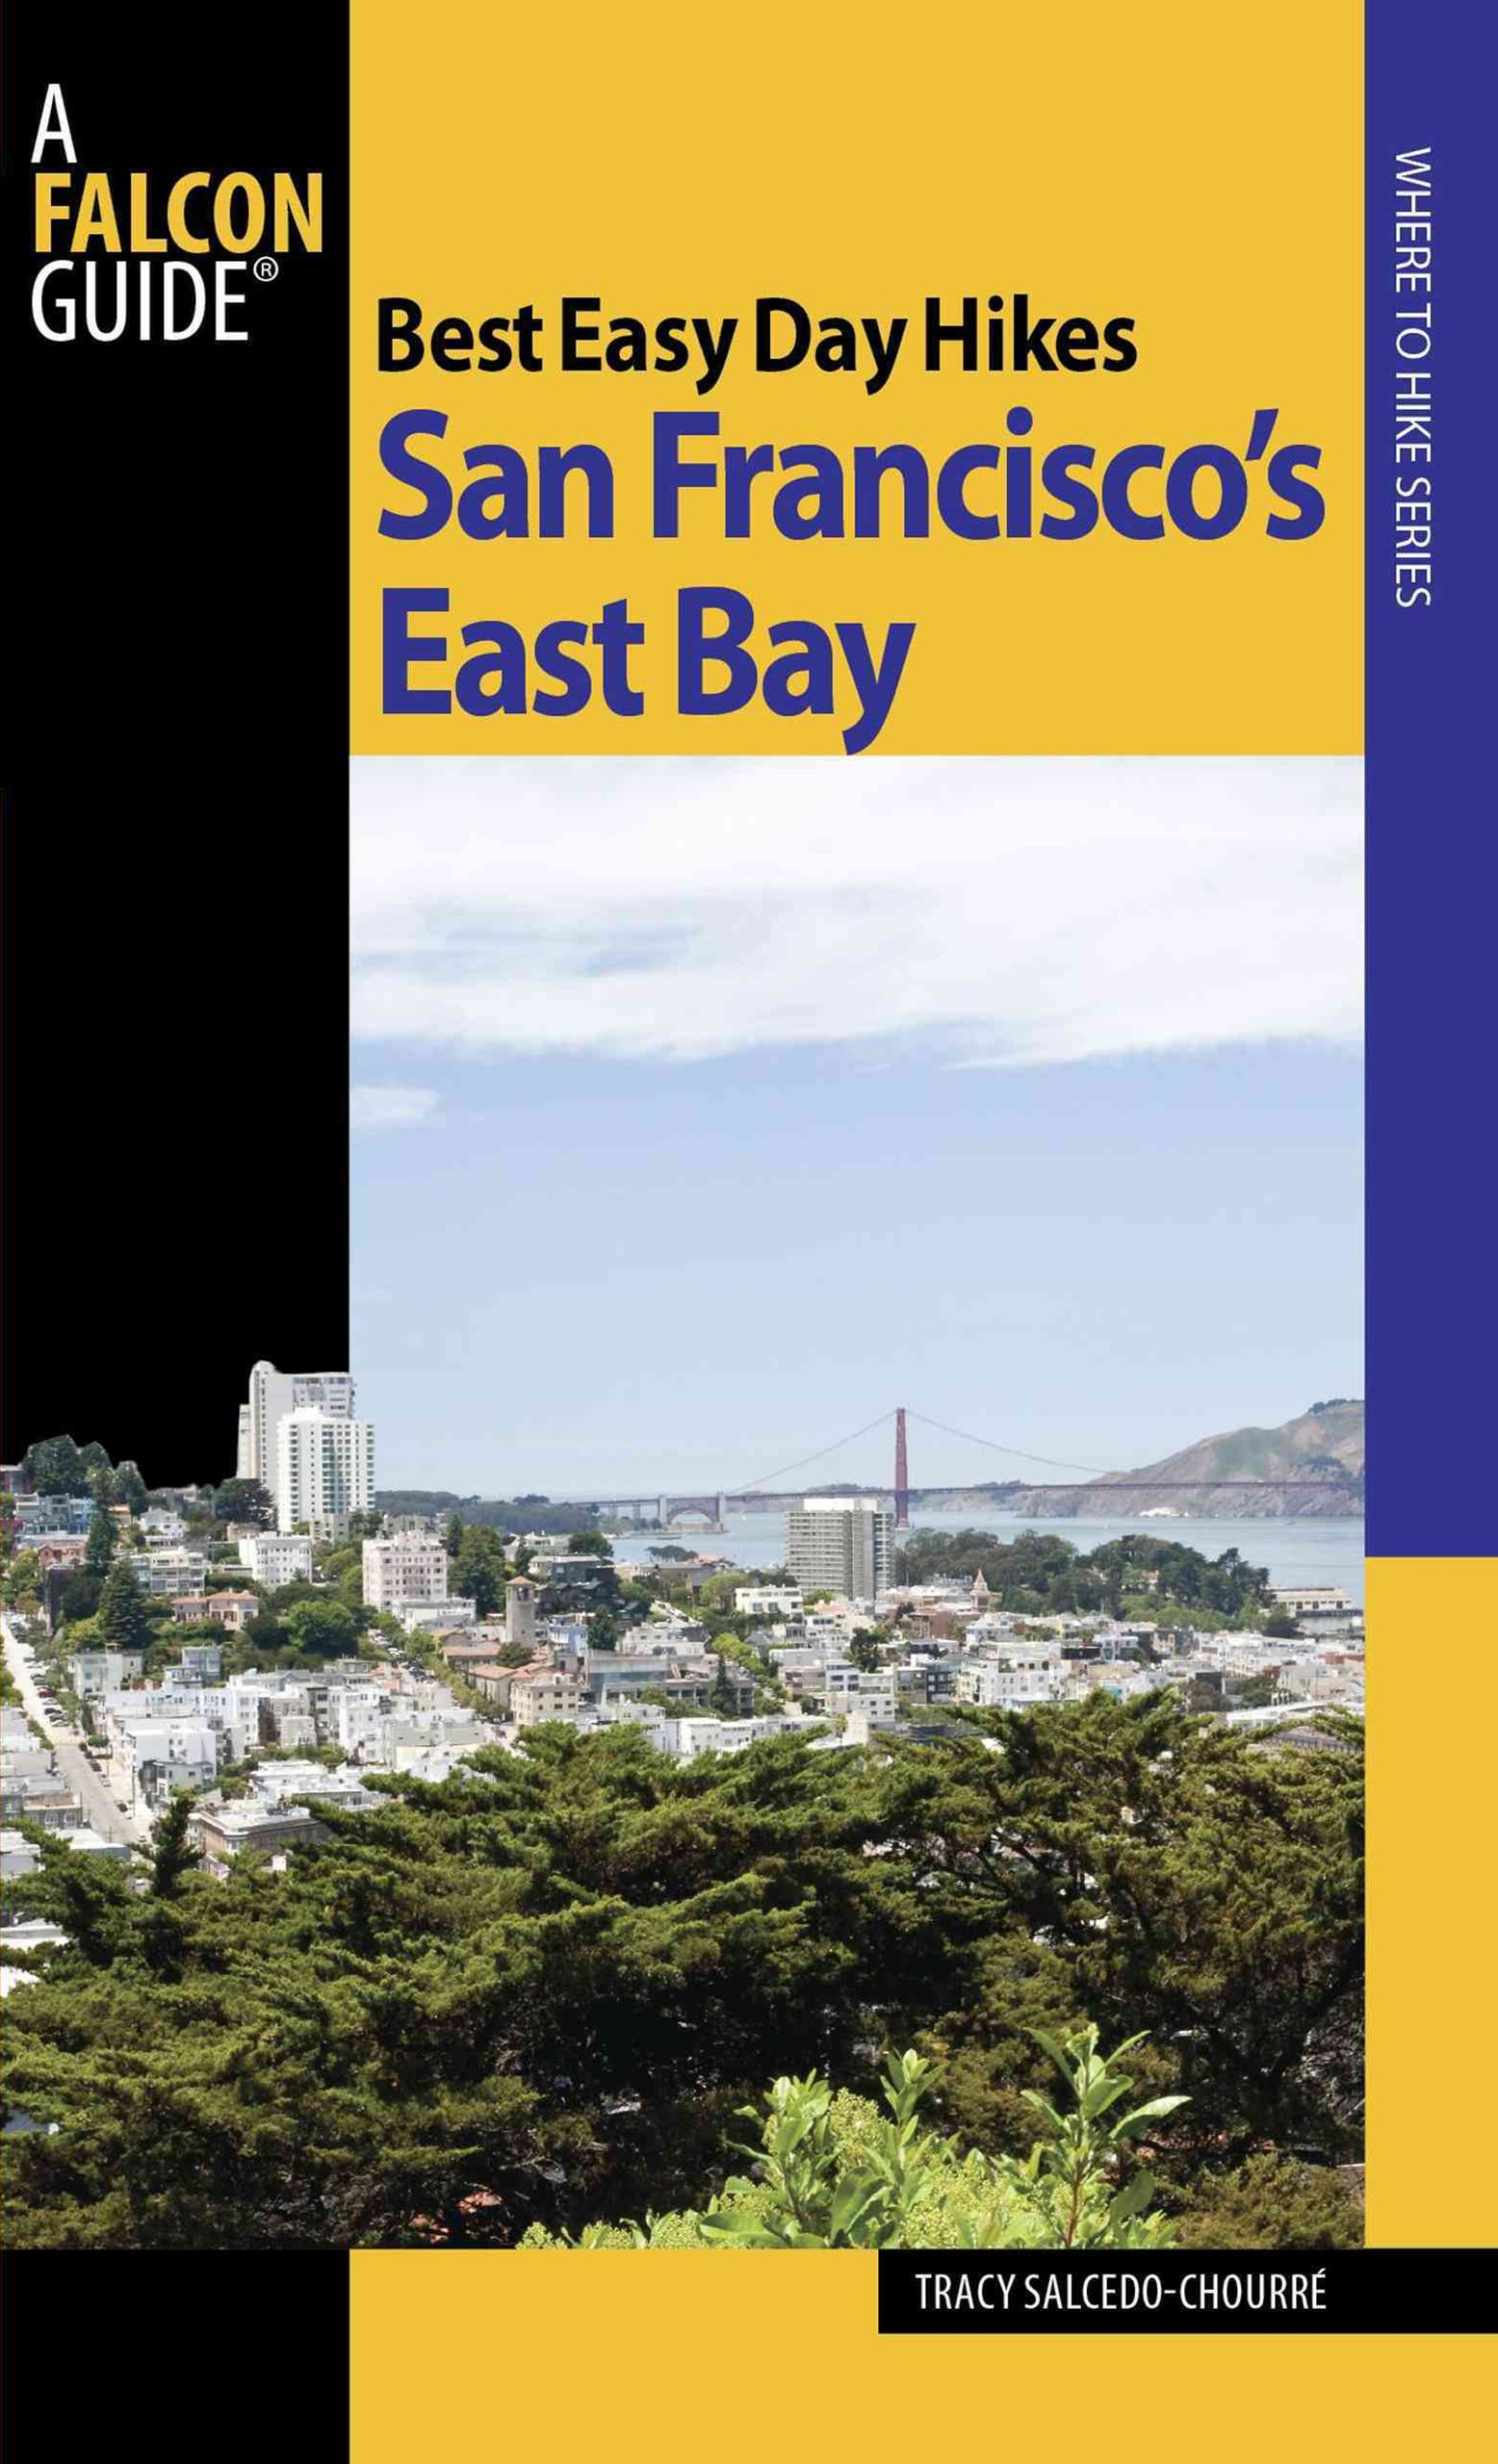 Best Easy Day Hikes San Francisco's East Bay